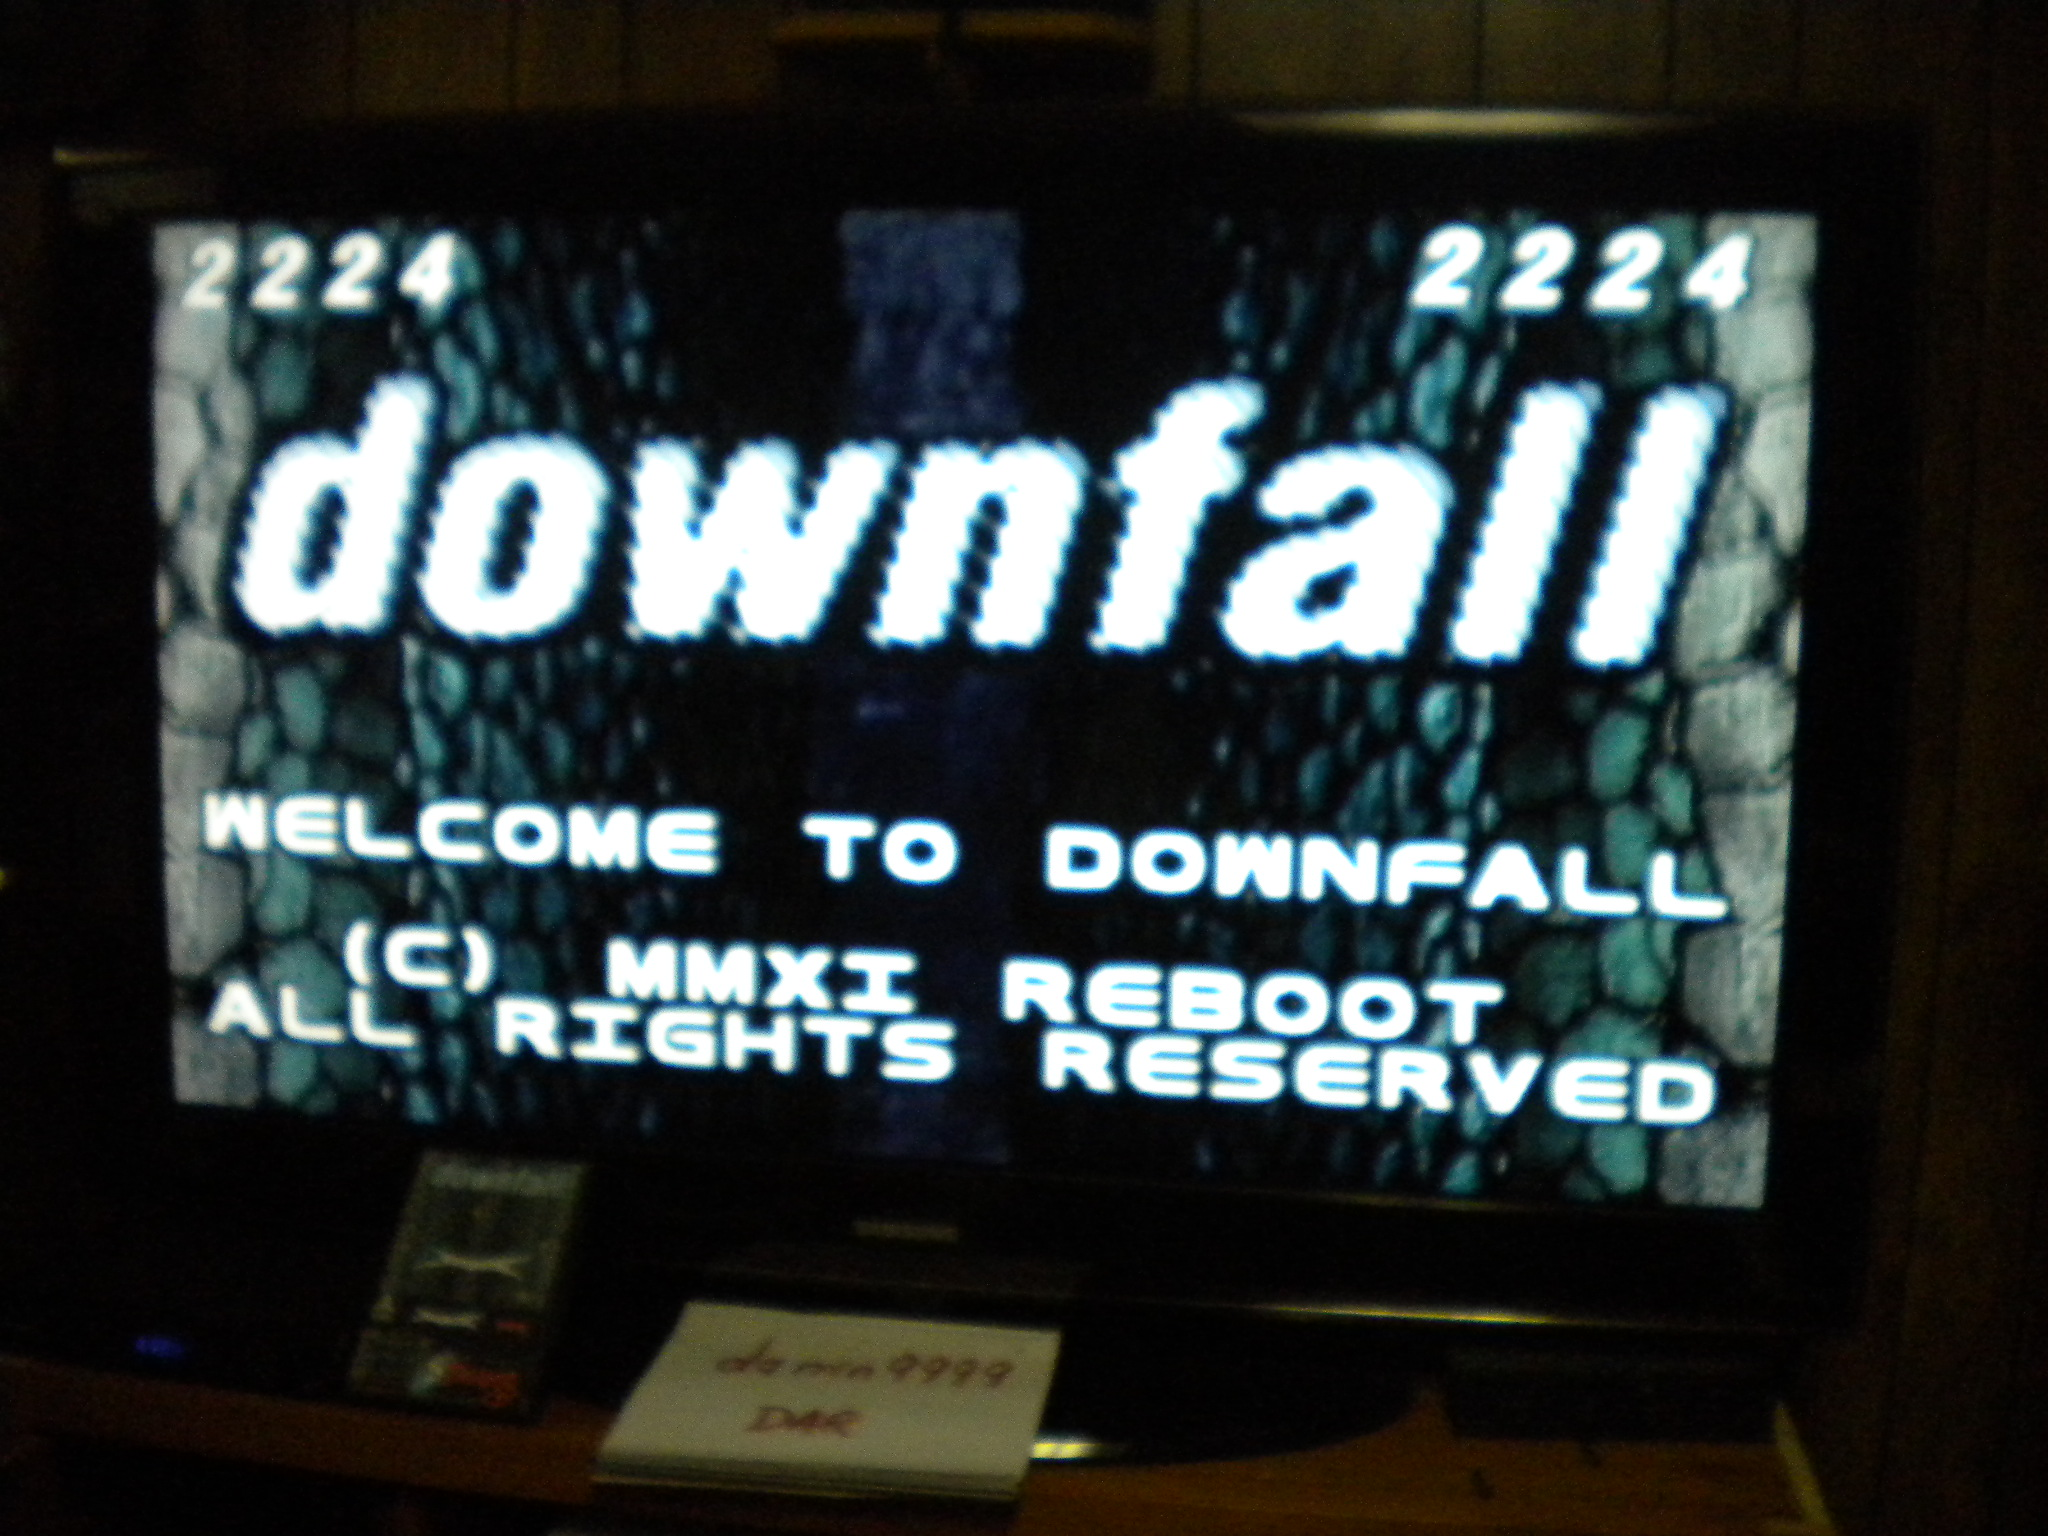 Downfall 2,224 points